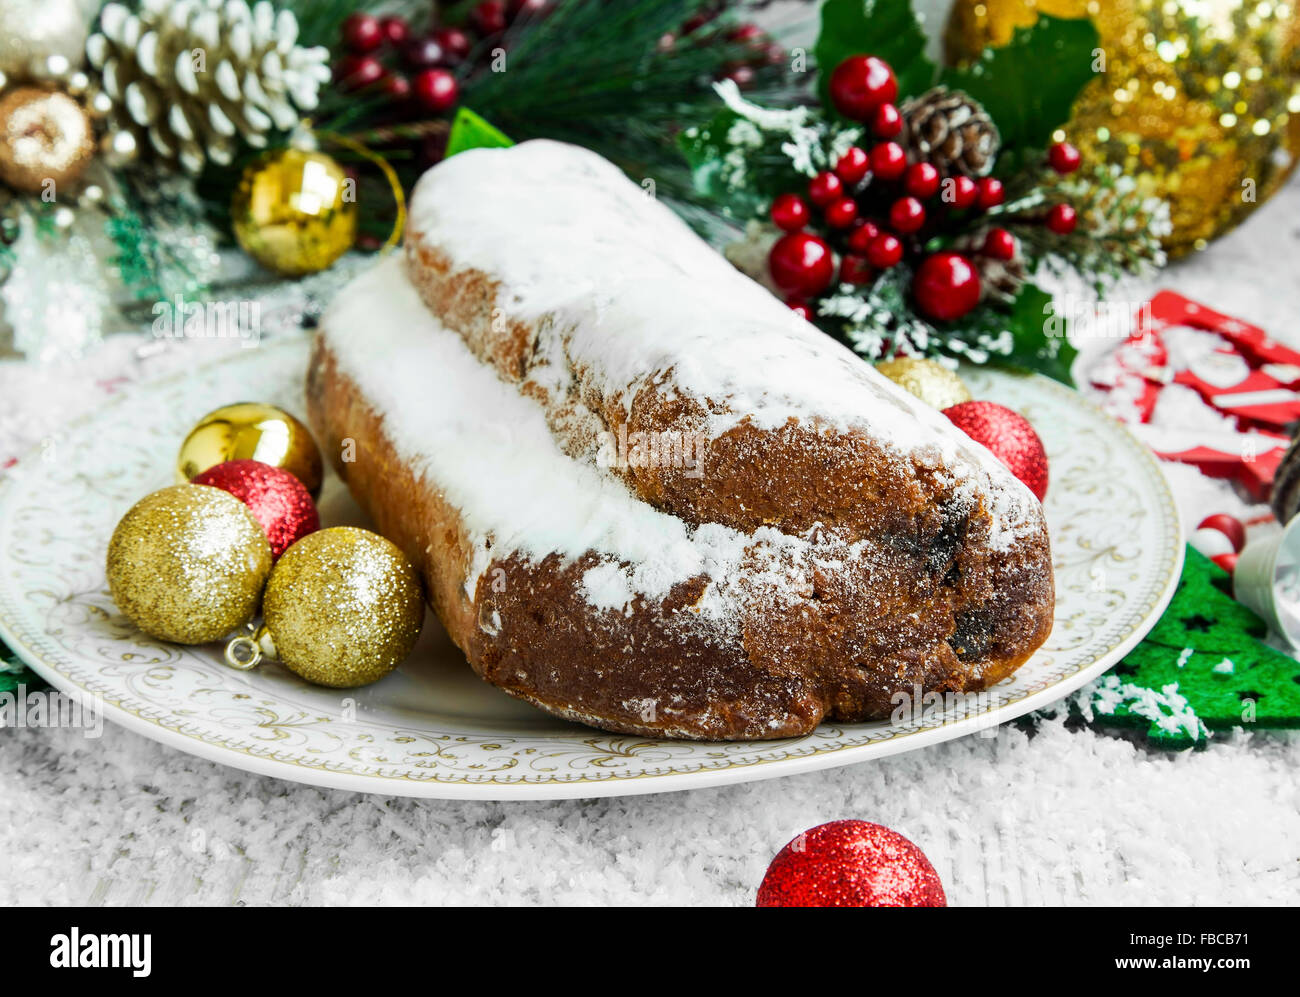 Christmas Cake ,Stolen Traditional Christmas Cake with Festive Ornaments - Stock Image